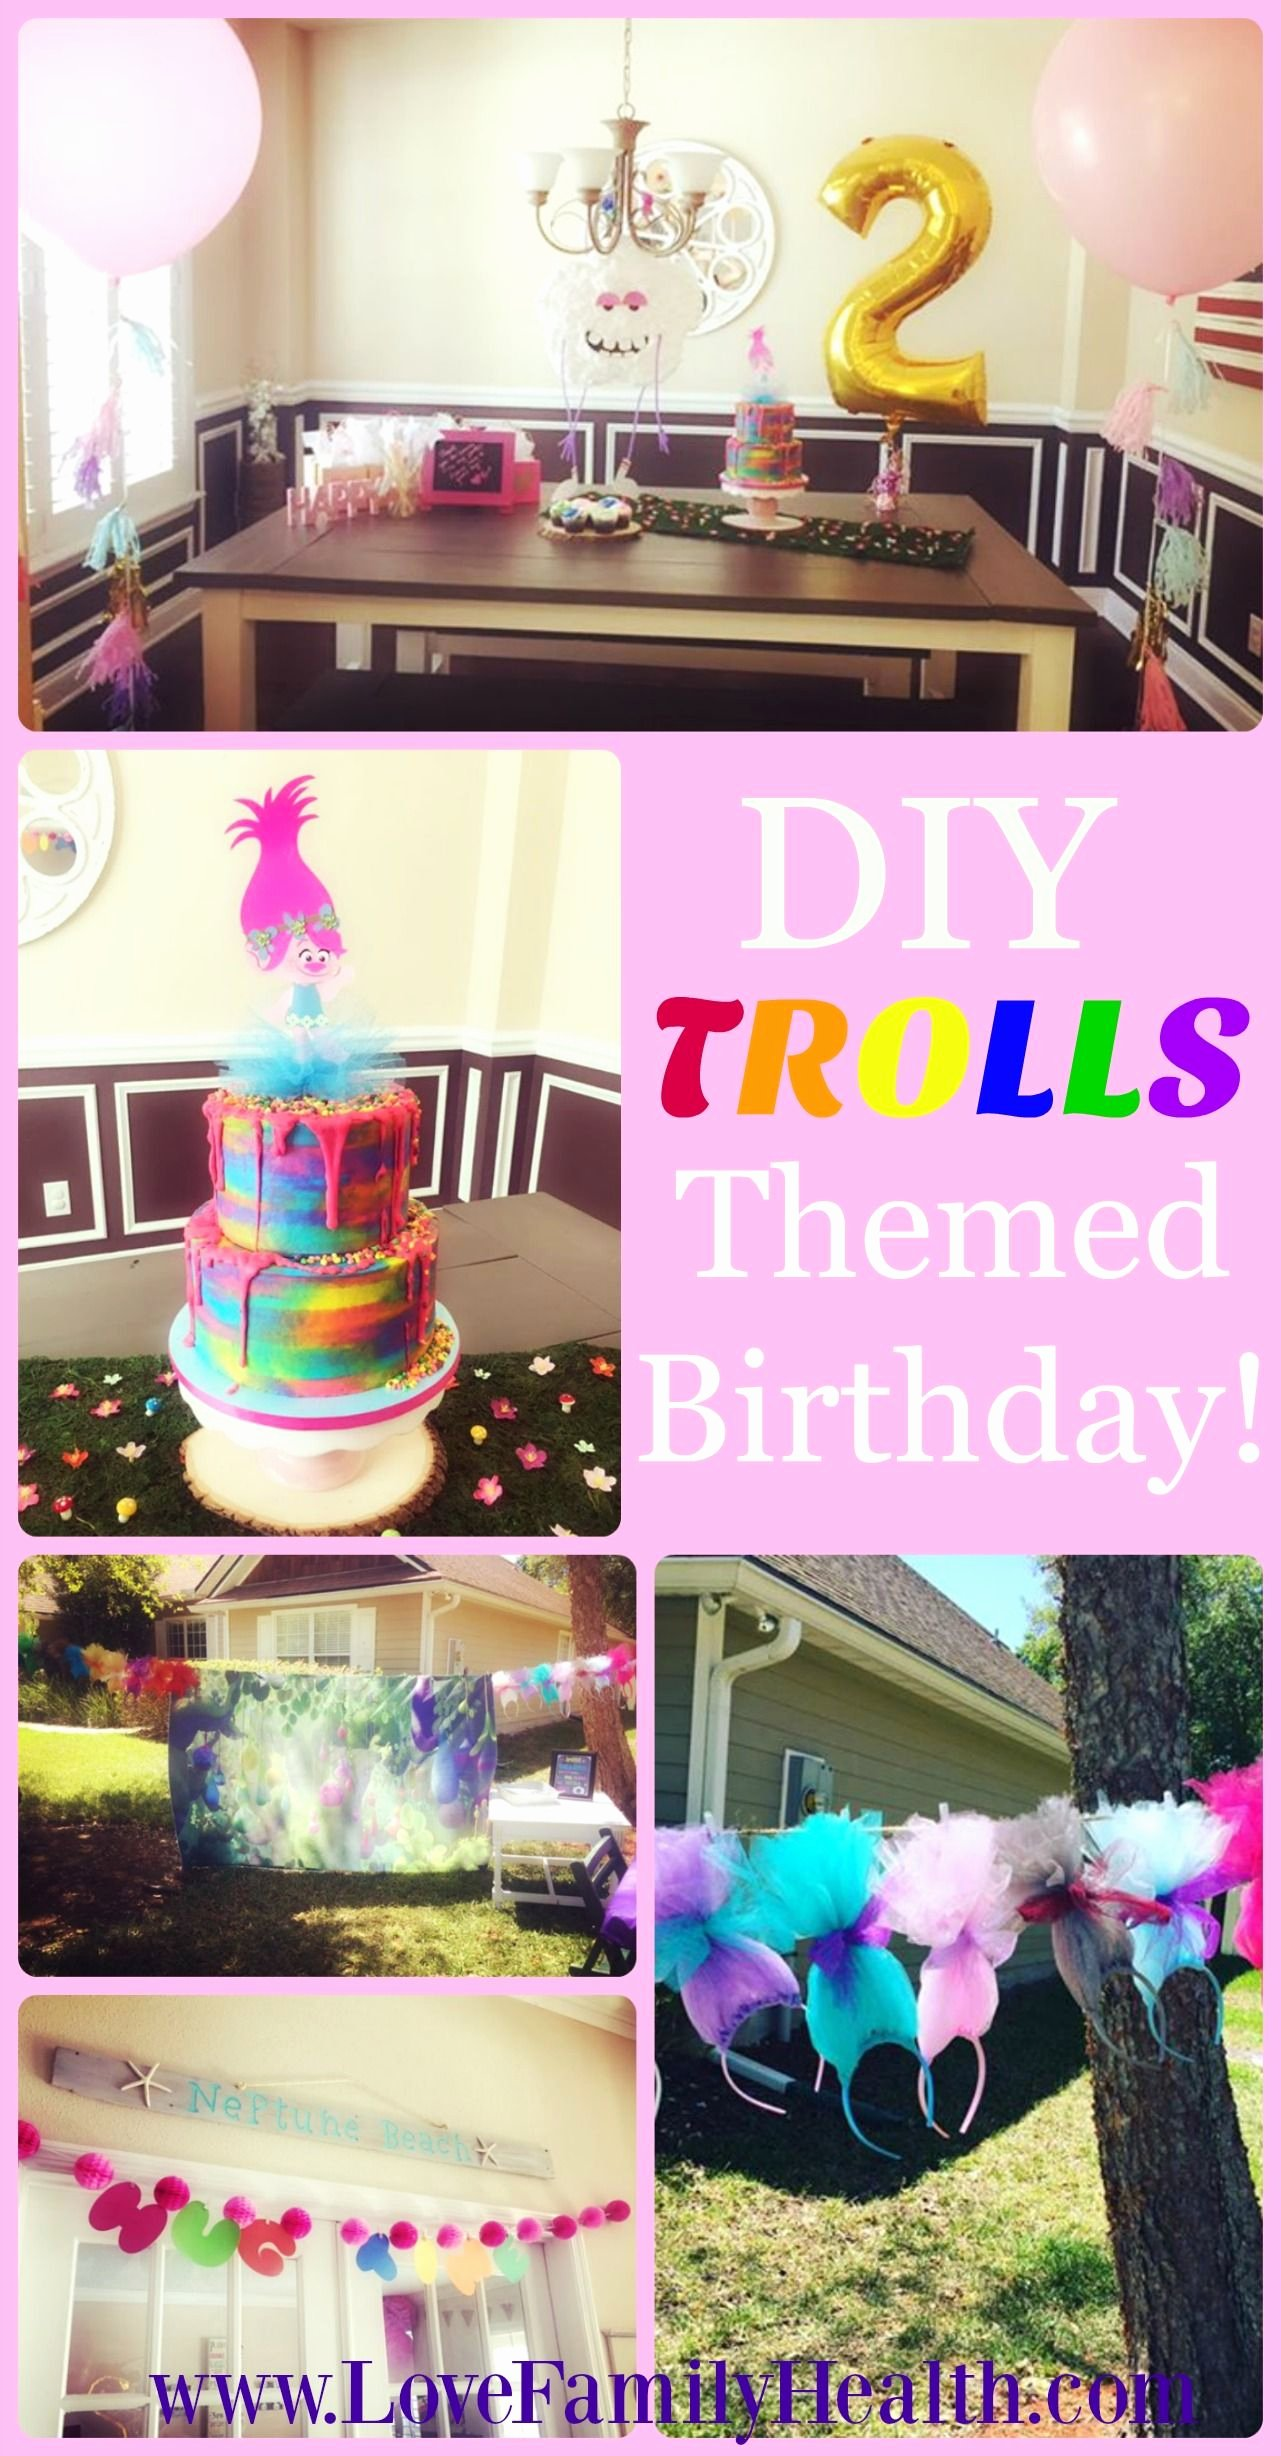 2nd Birthday Decoration Ideas at Home for Girl New Diy Trolls themed 2nd Birthday